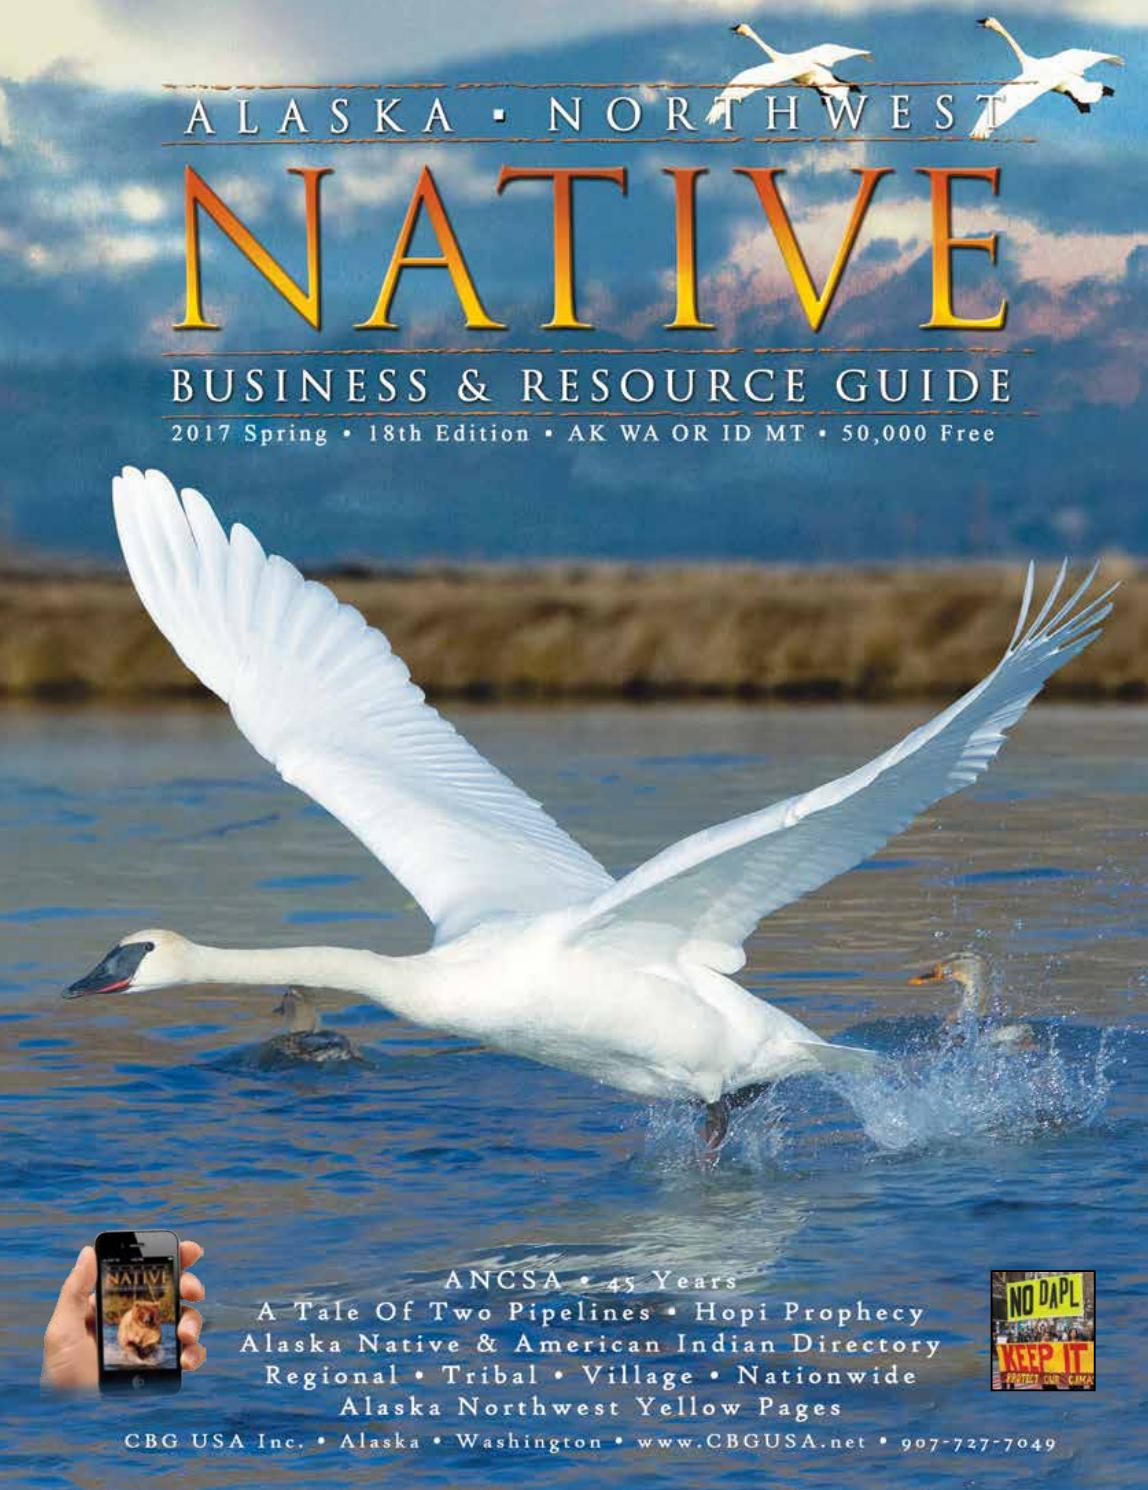 Alaska Northwest Native Business & Resource Guide 18th Ed